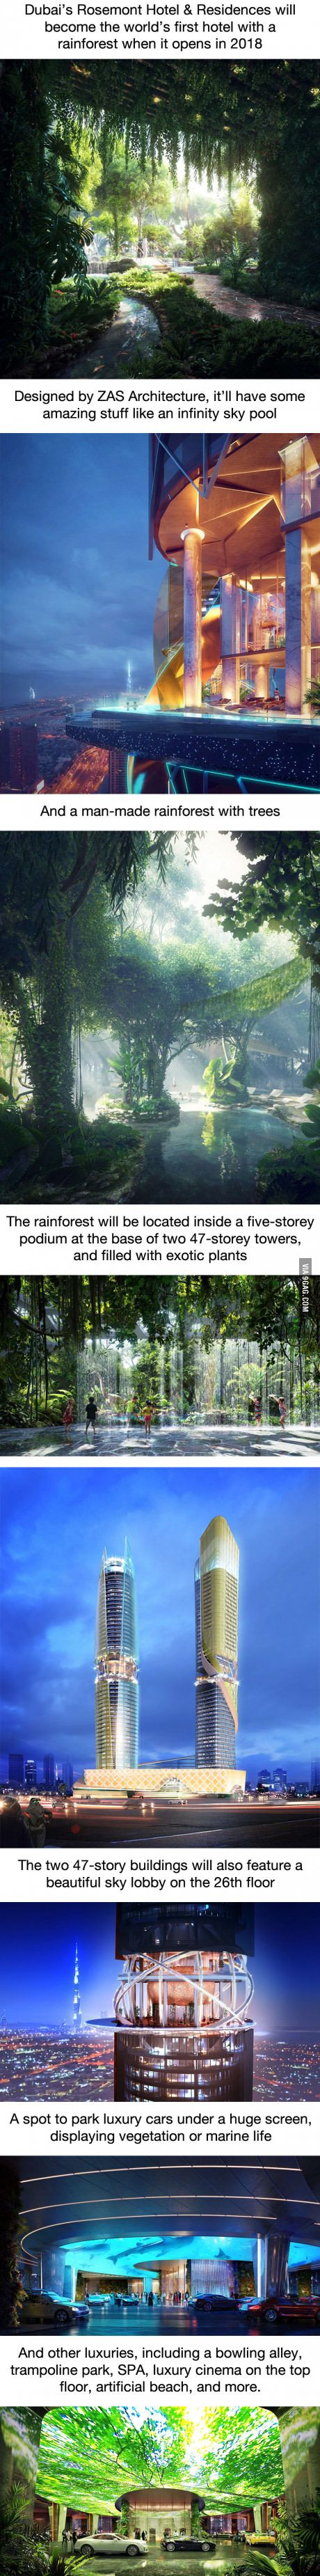 Dubai is opening a hotel with a fu*king rainforest inside. Because why not?